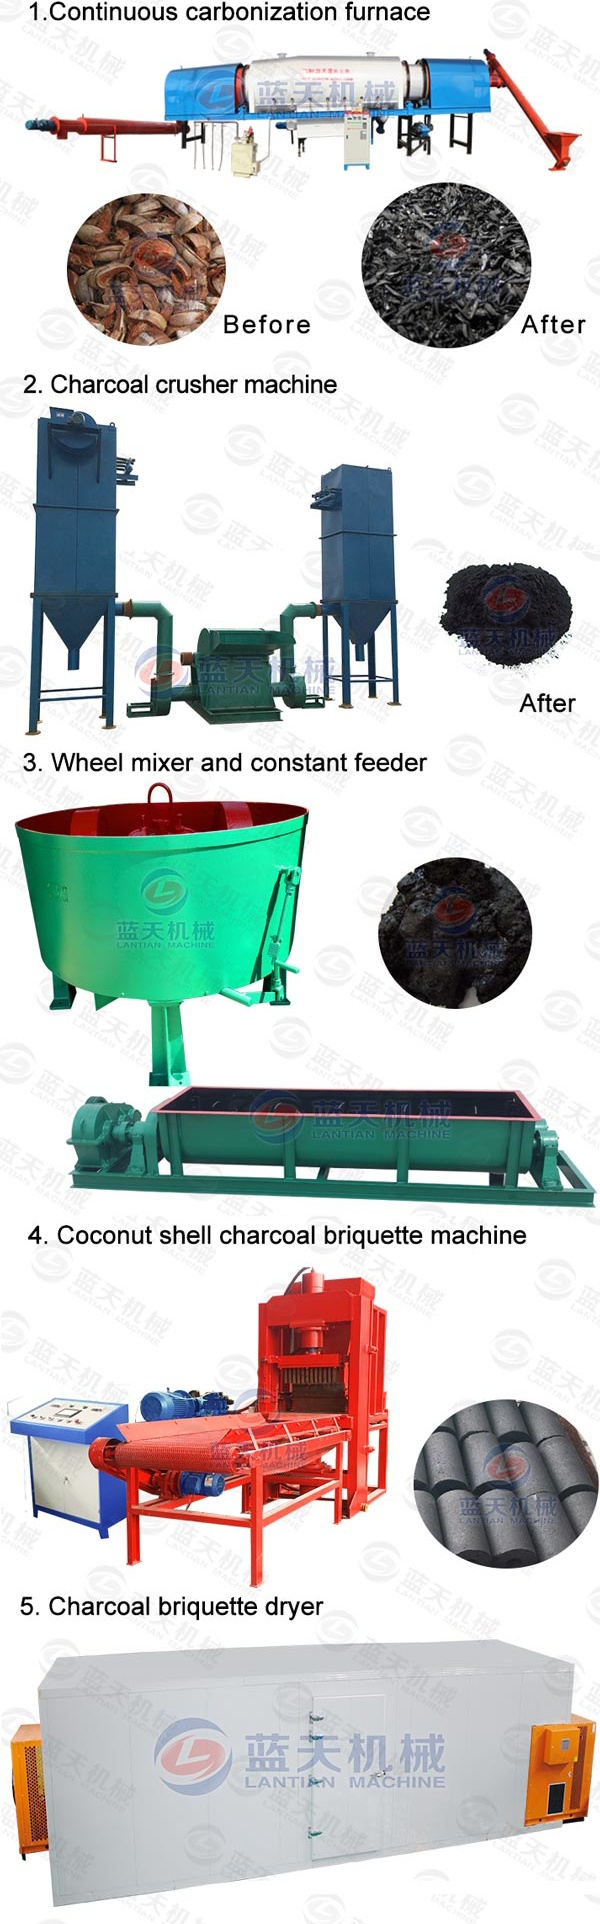 Processing line of Coconut Shell Charcoal Briquette Machine